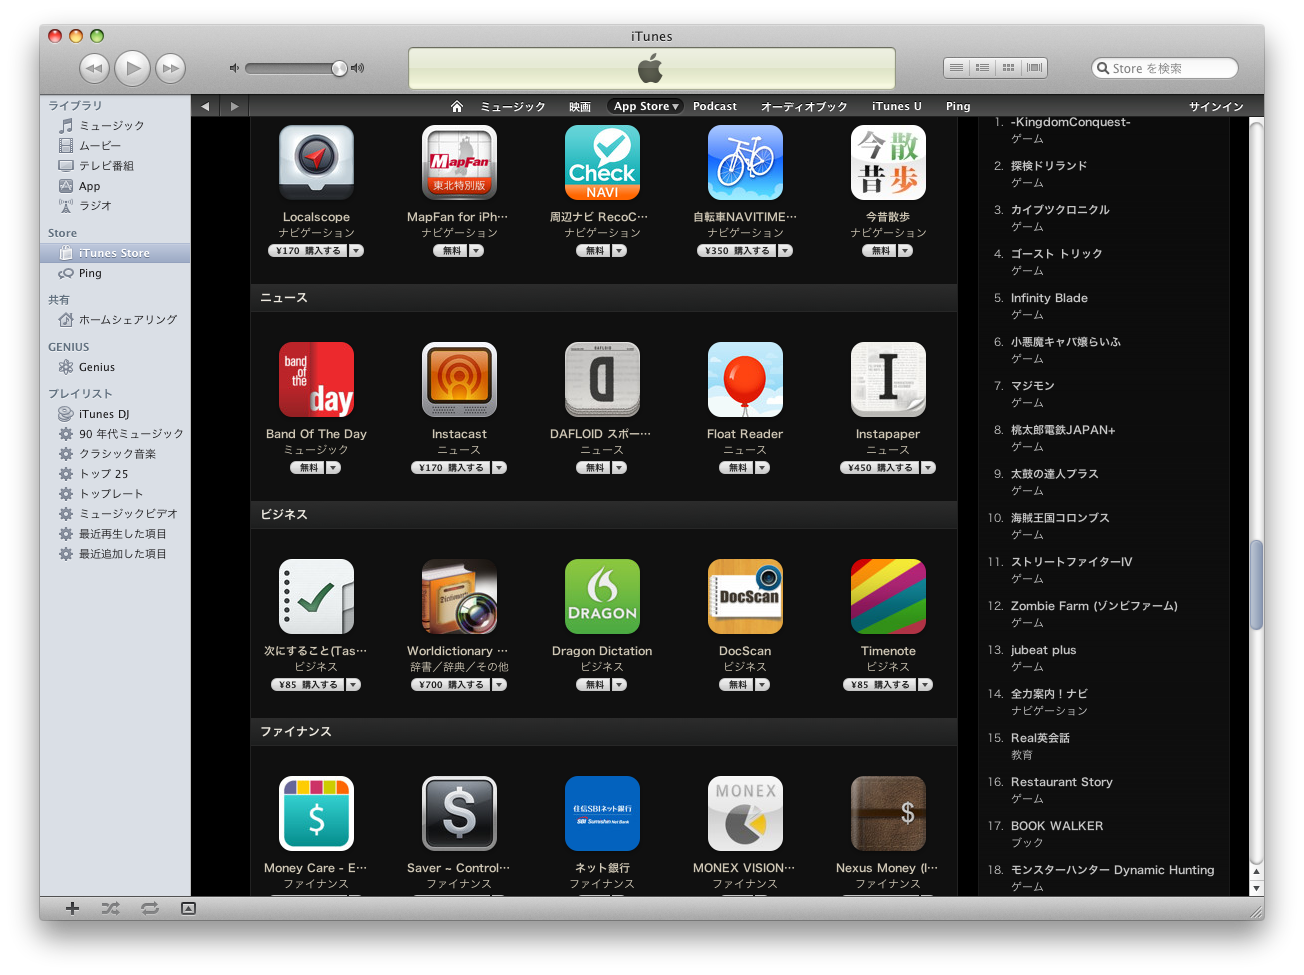 timenote win app store rewind 2011  apple u2019s award for annual top selling ios apps